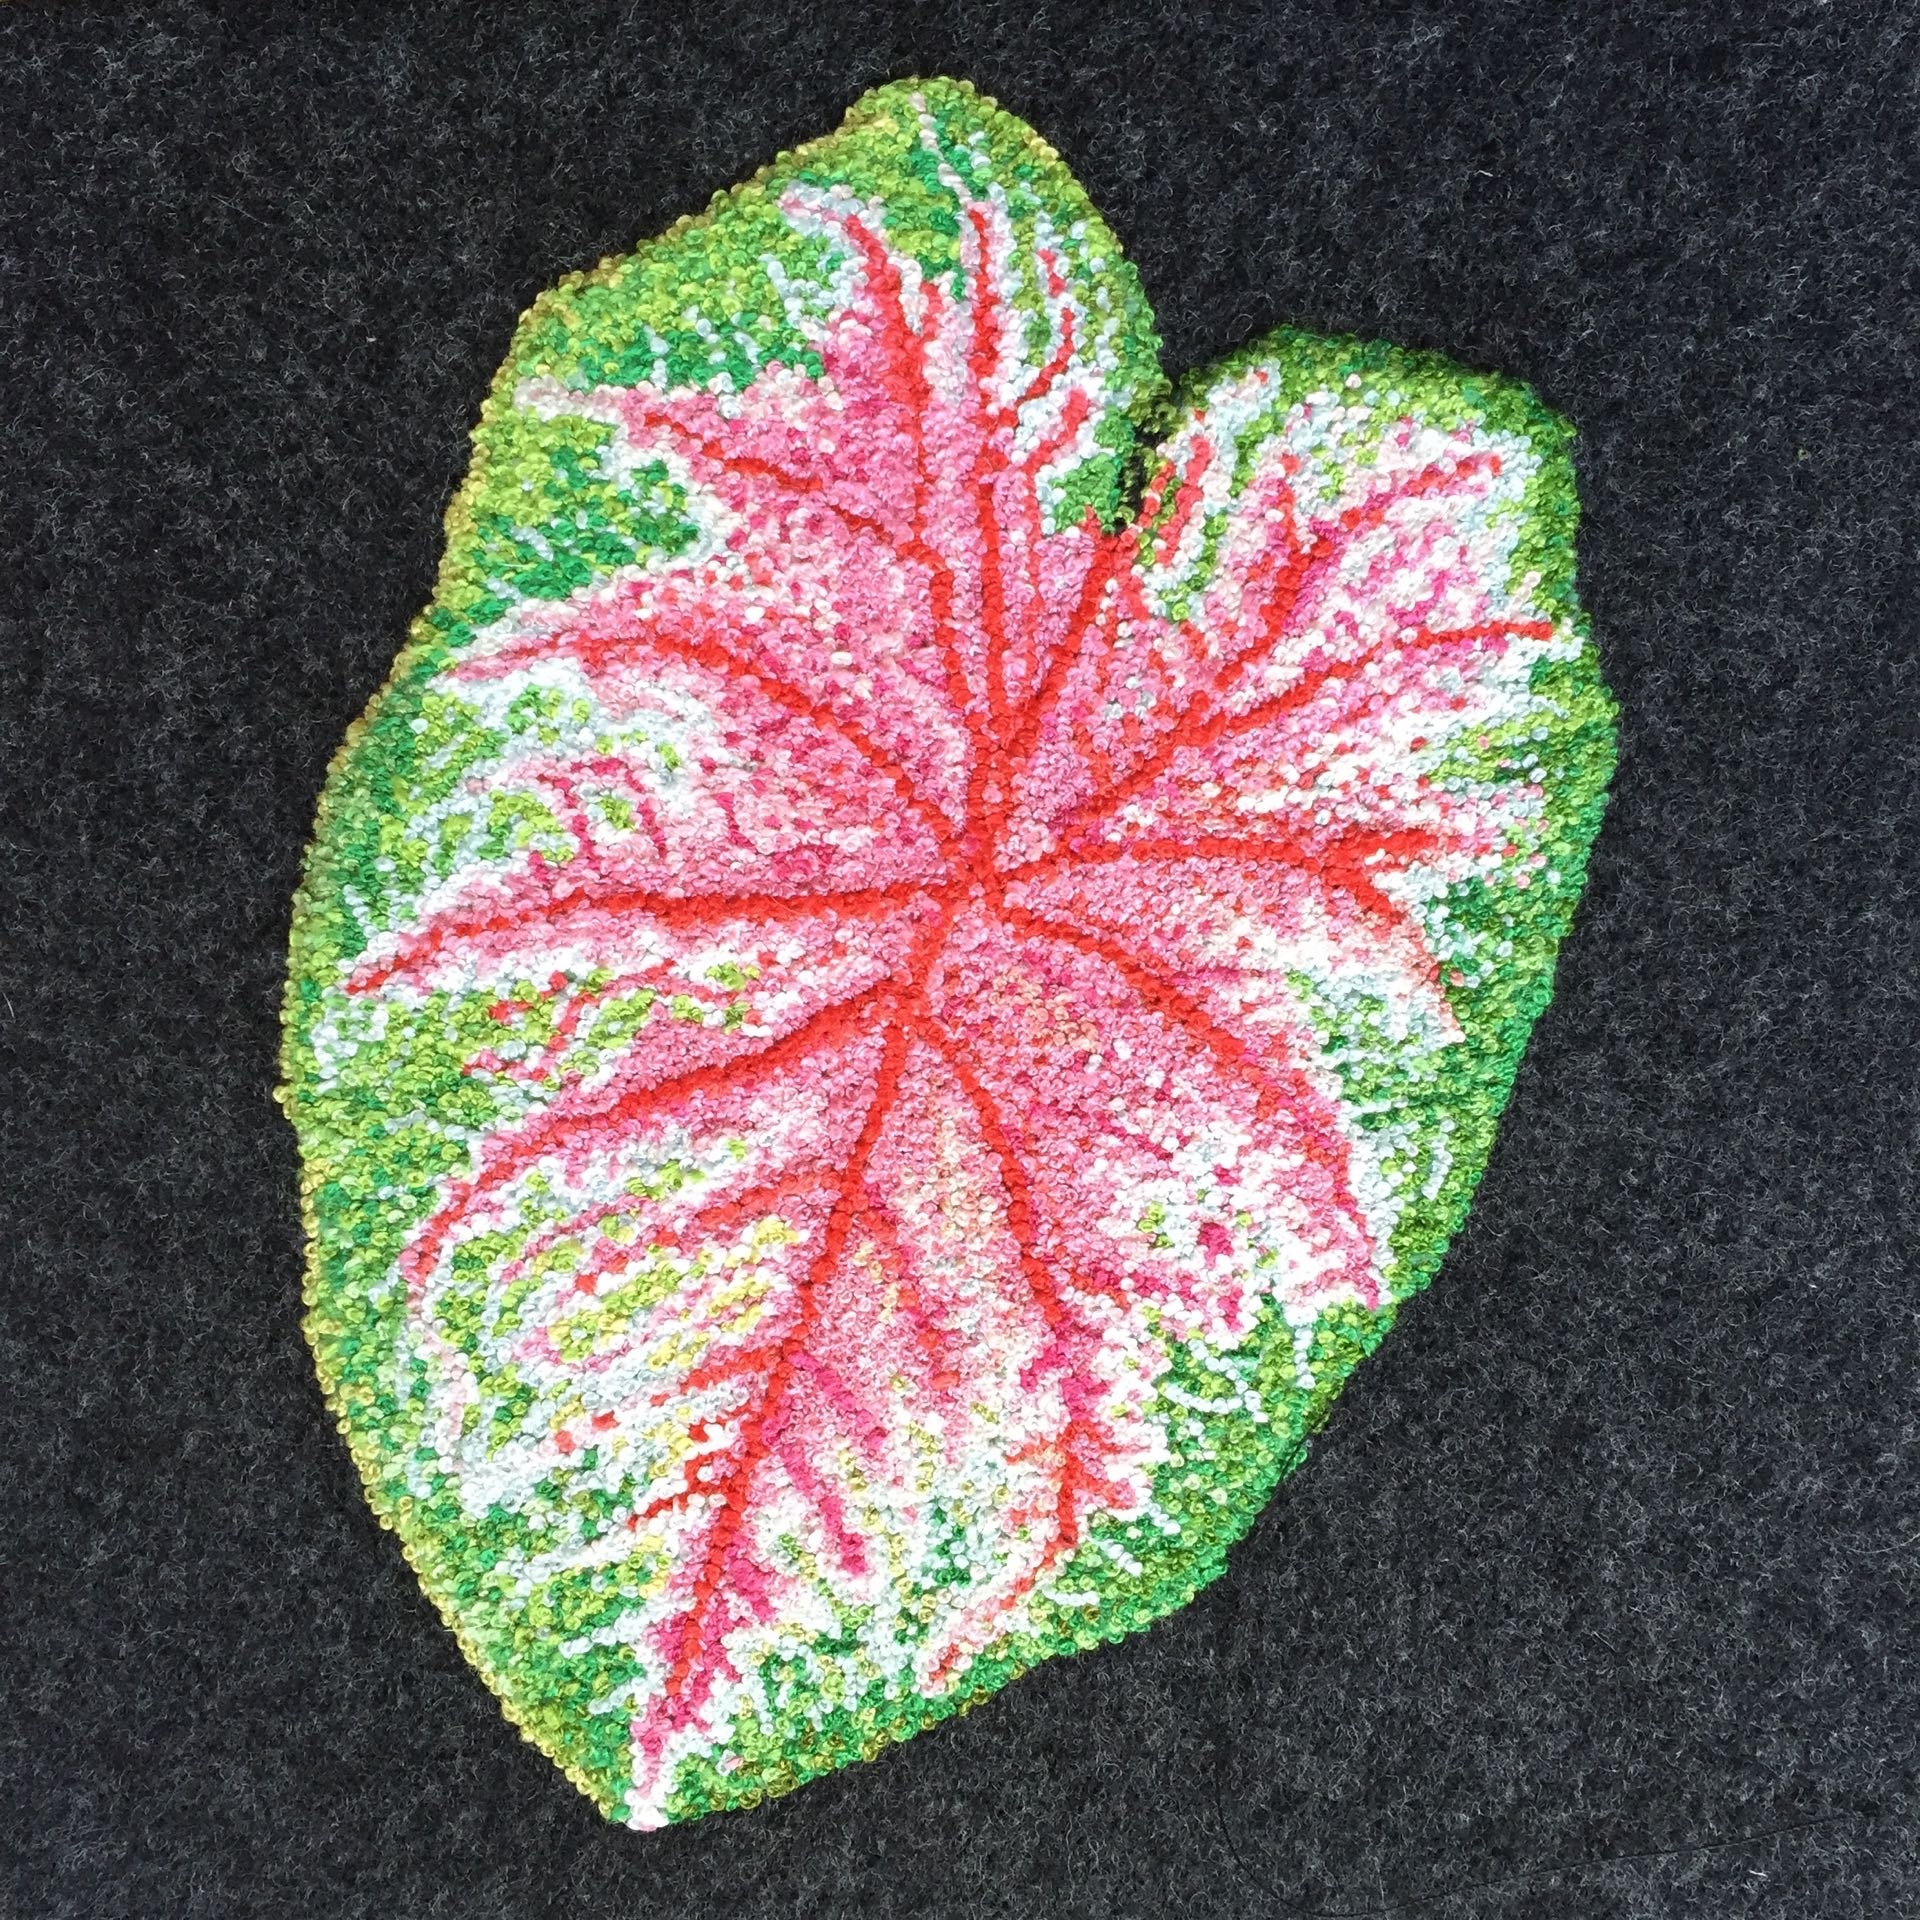 """Caladium,2015, embroidery floss french knots on wool fabric, 6"""" x 6"""" x 1"""""""